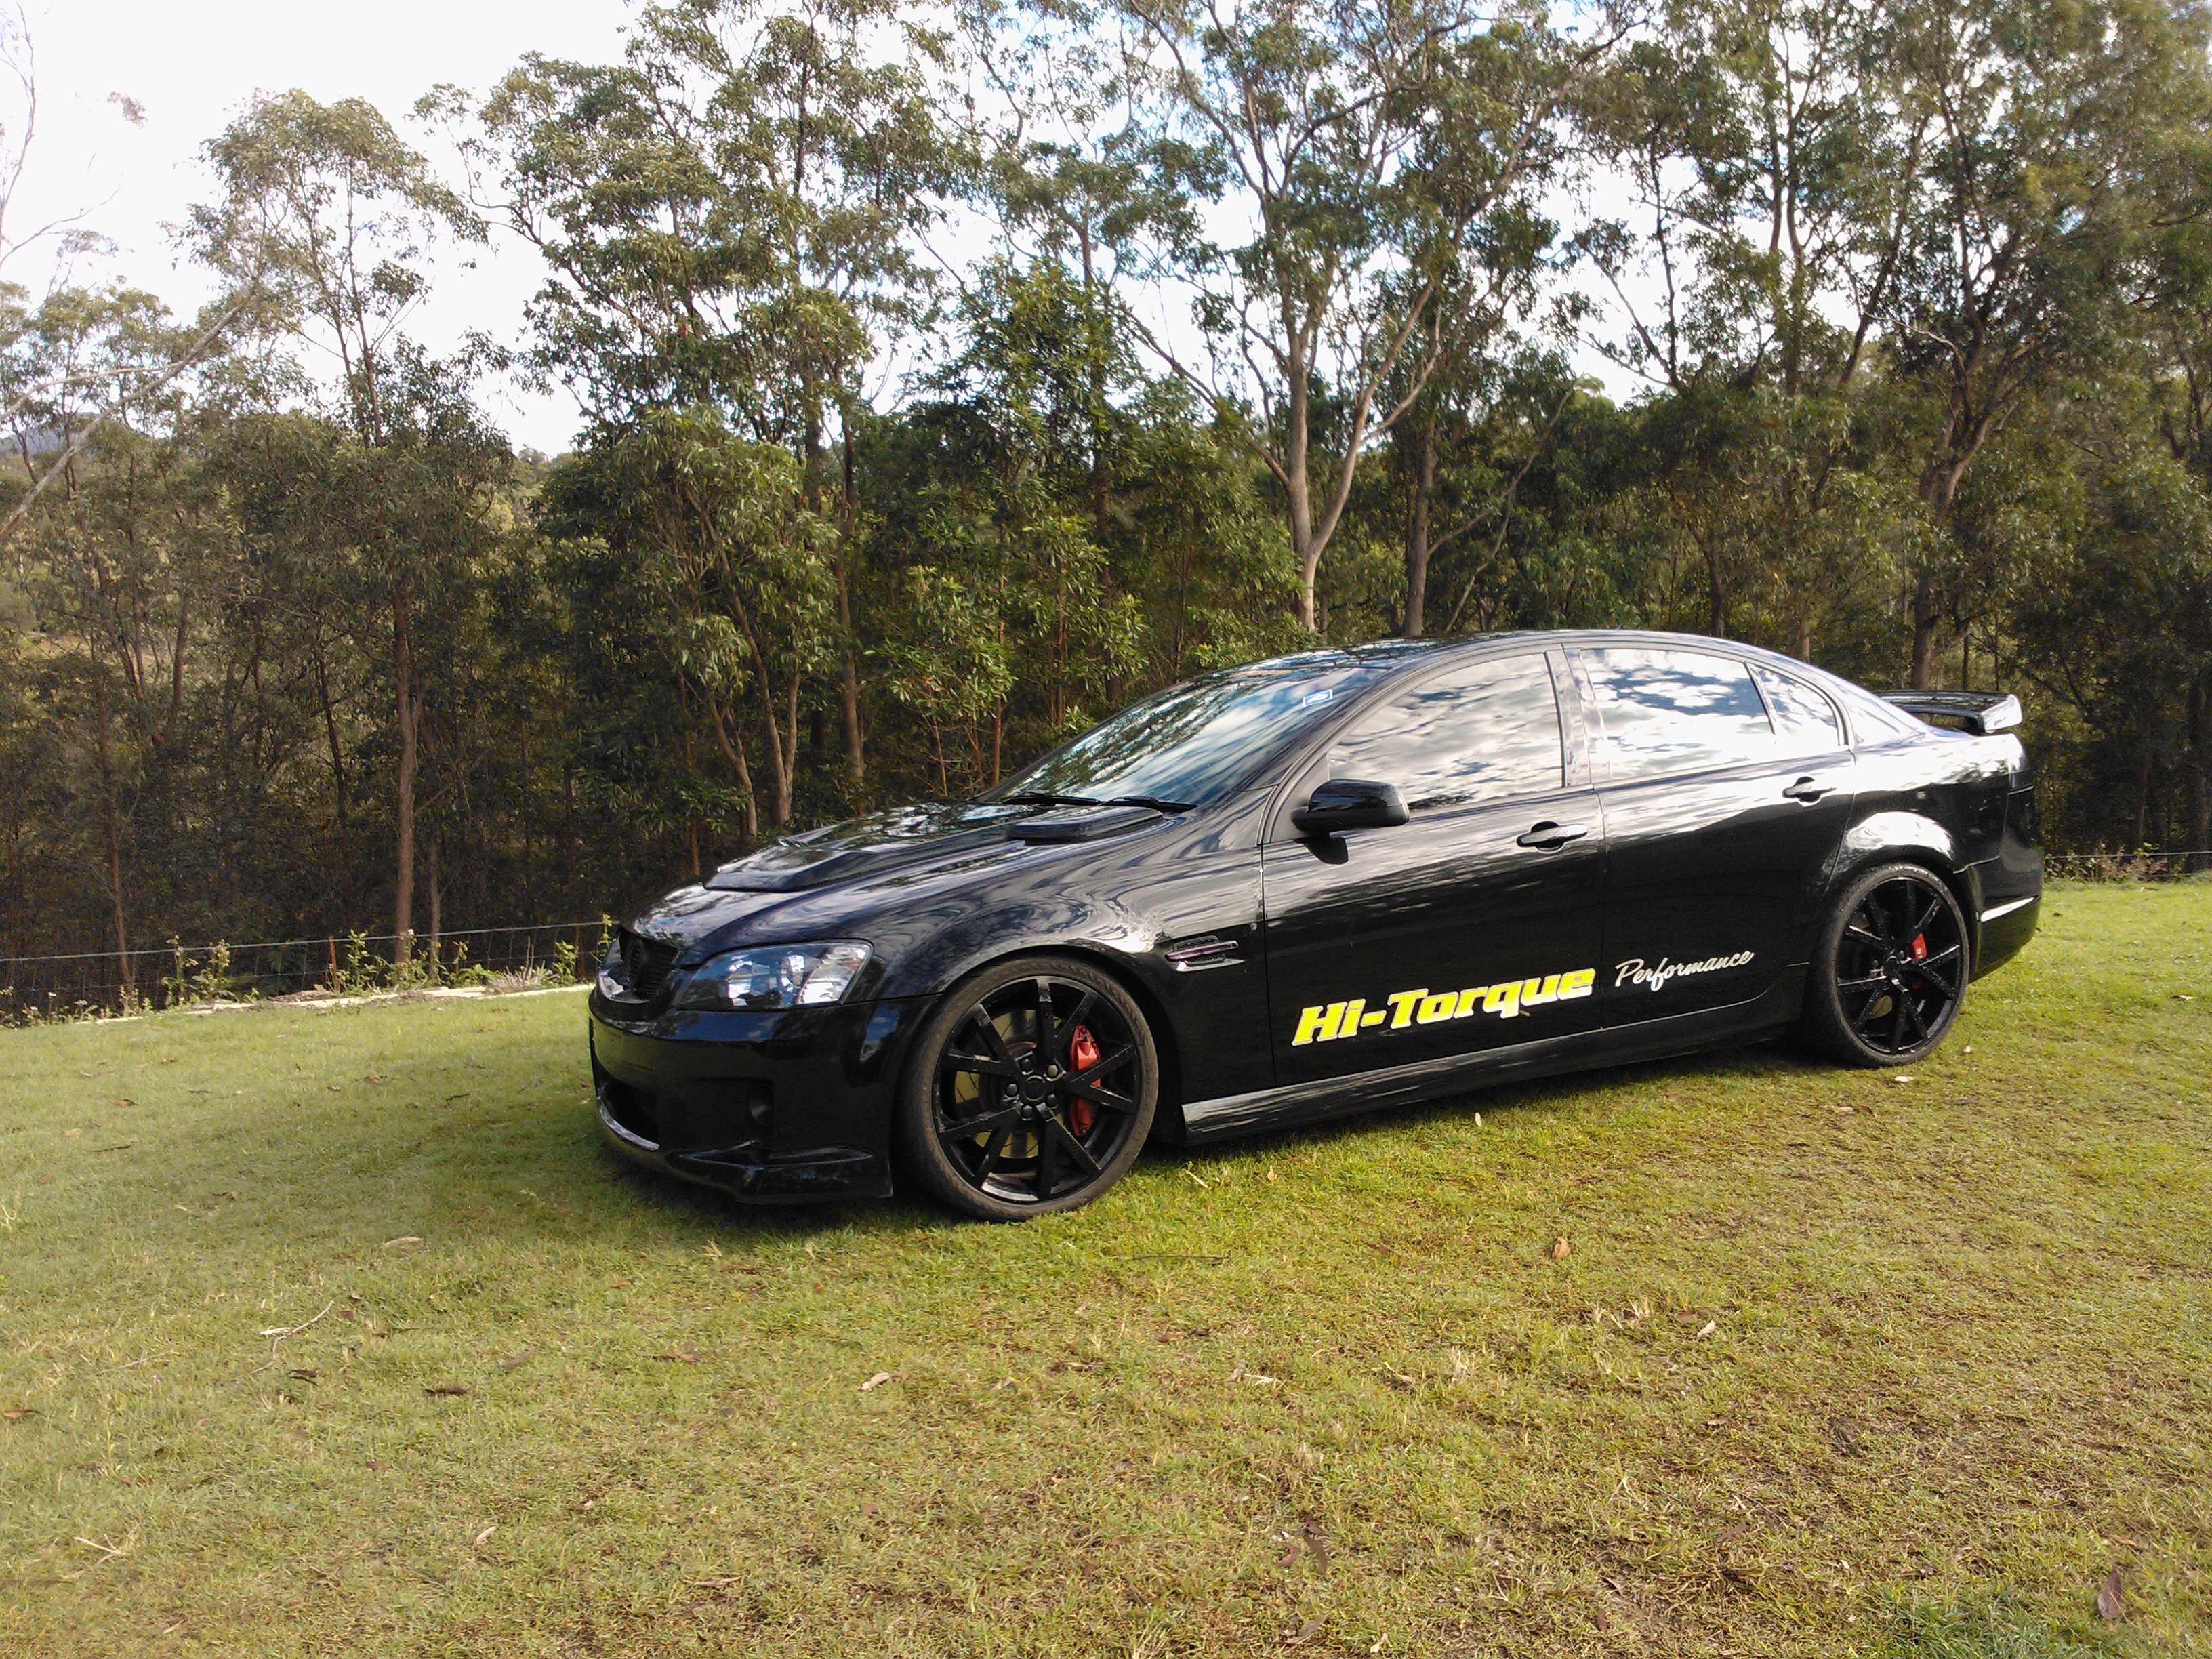 2006 Holden Commodore SS VE related infomation,specifications